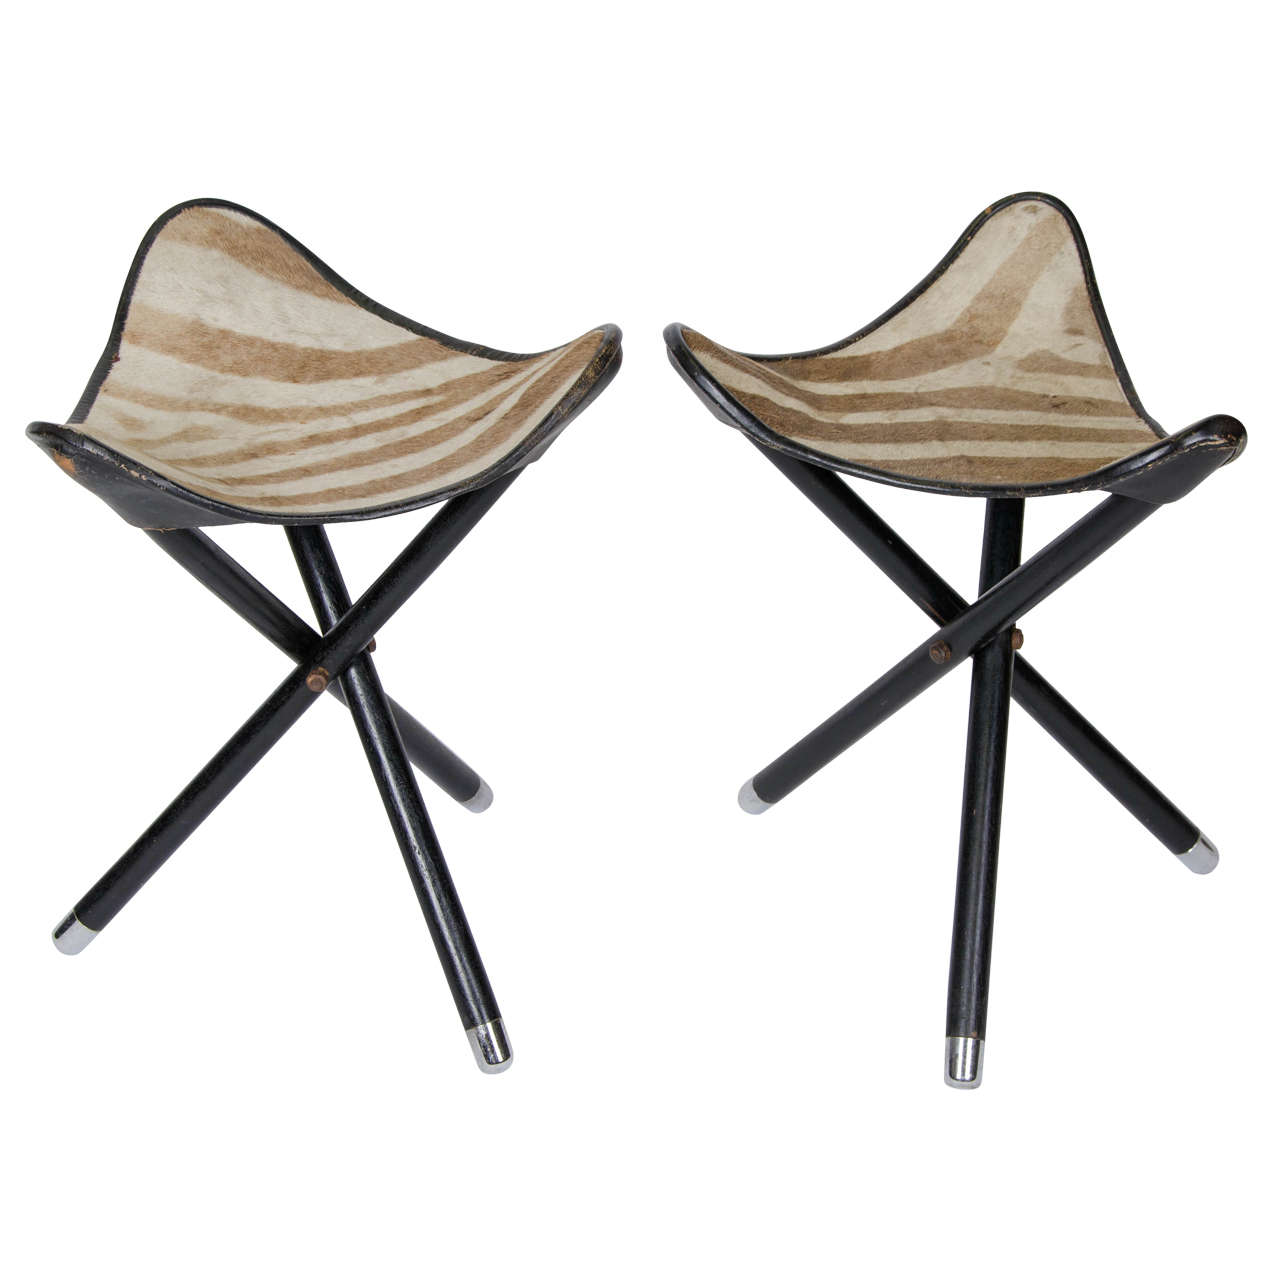 Pair Of 1950s French Folding Safari Stools With Zebra Hide